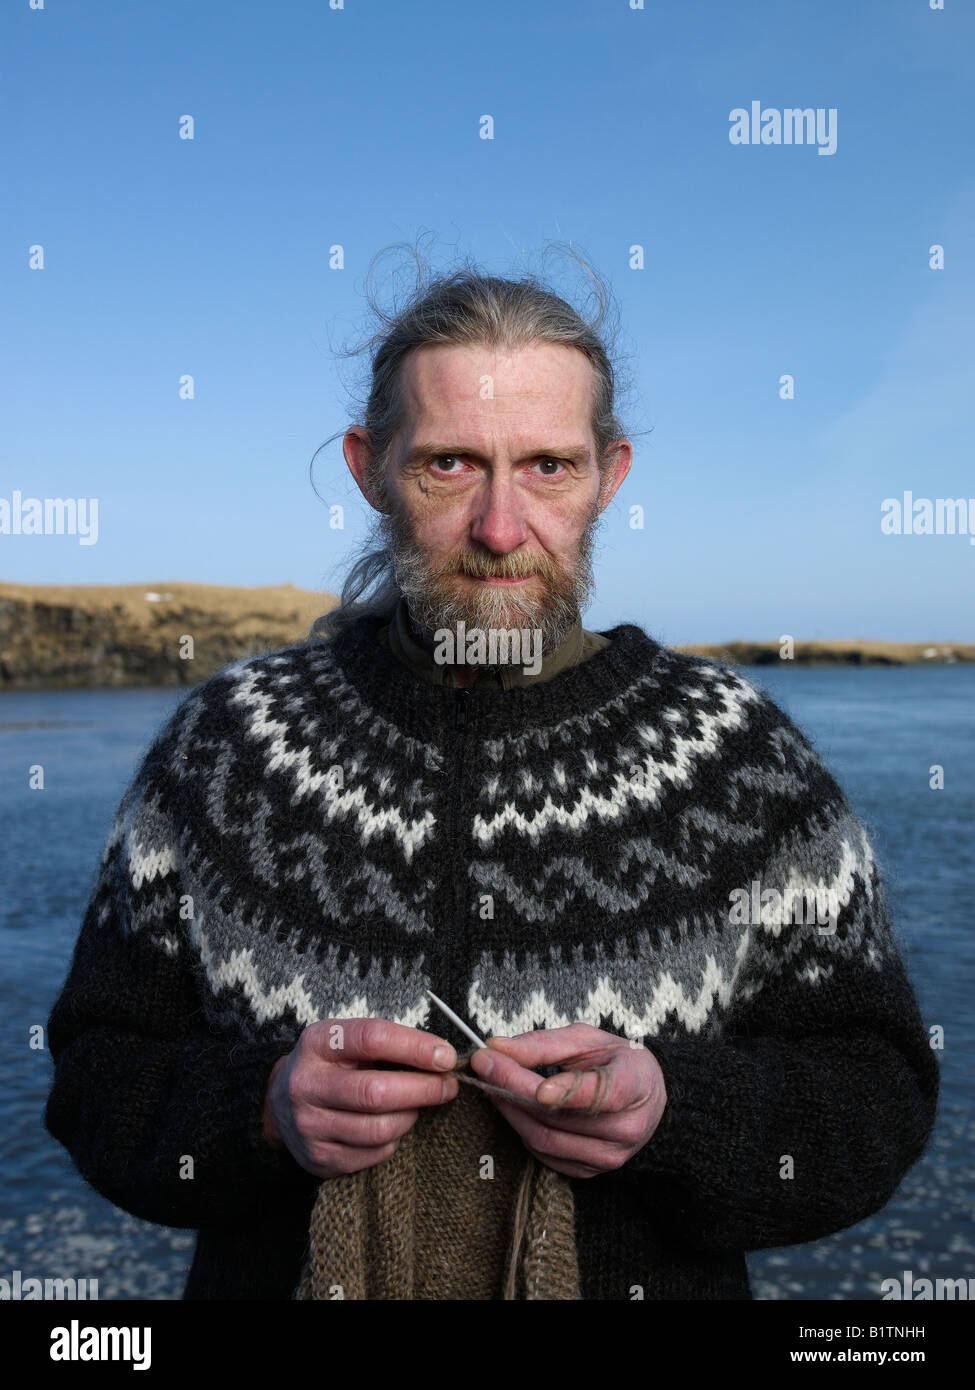 Man knitting, Hofn Iceland - Stock Image